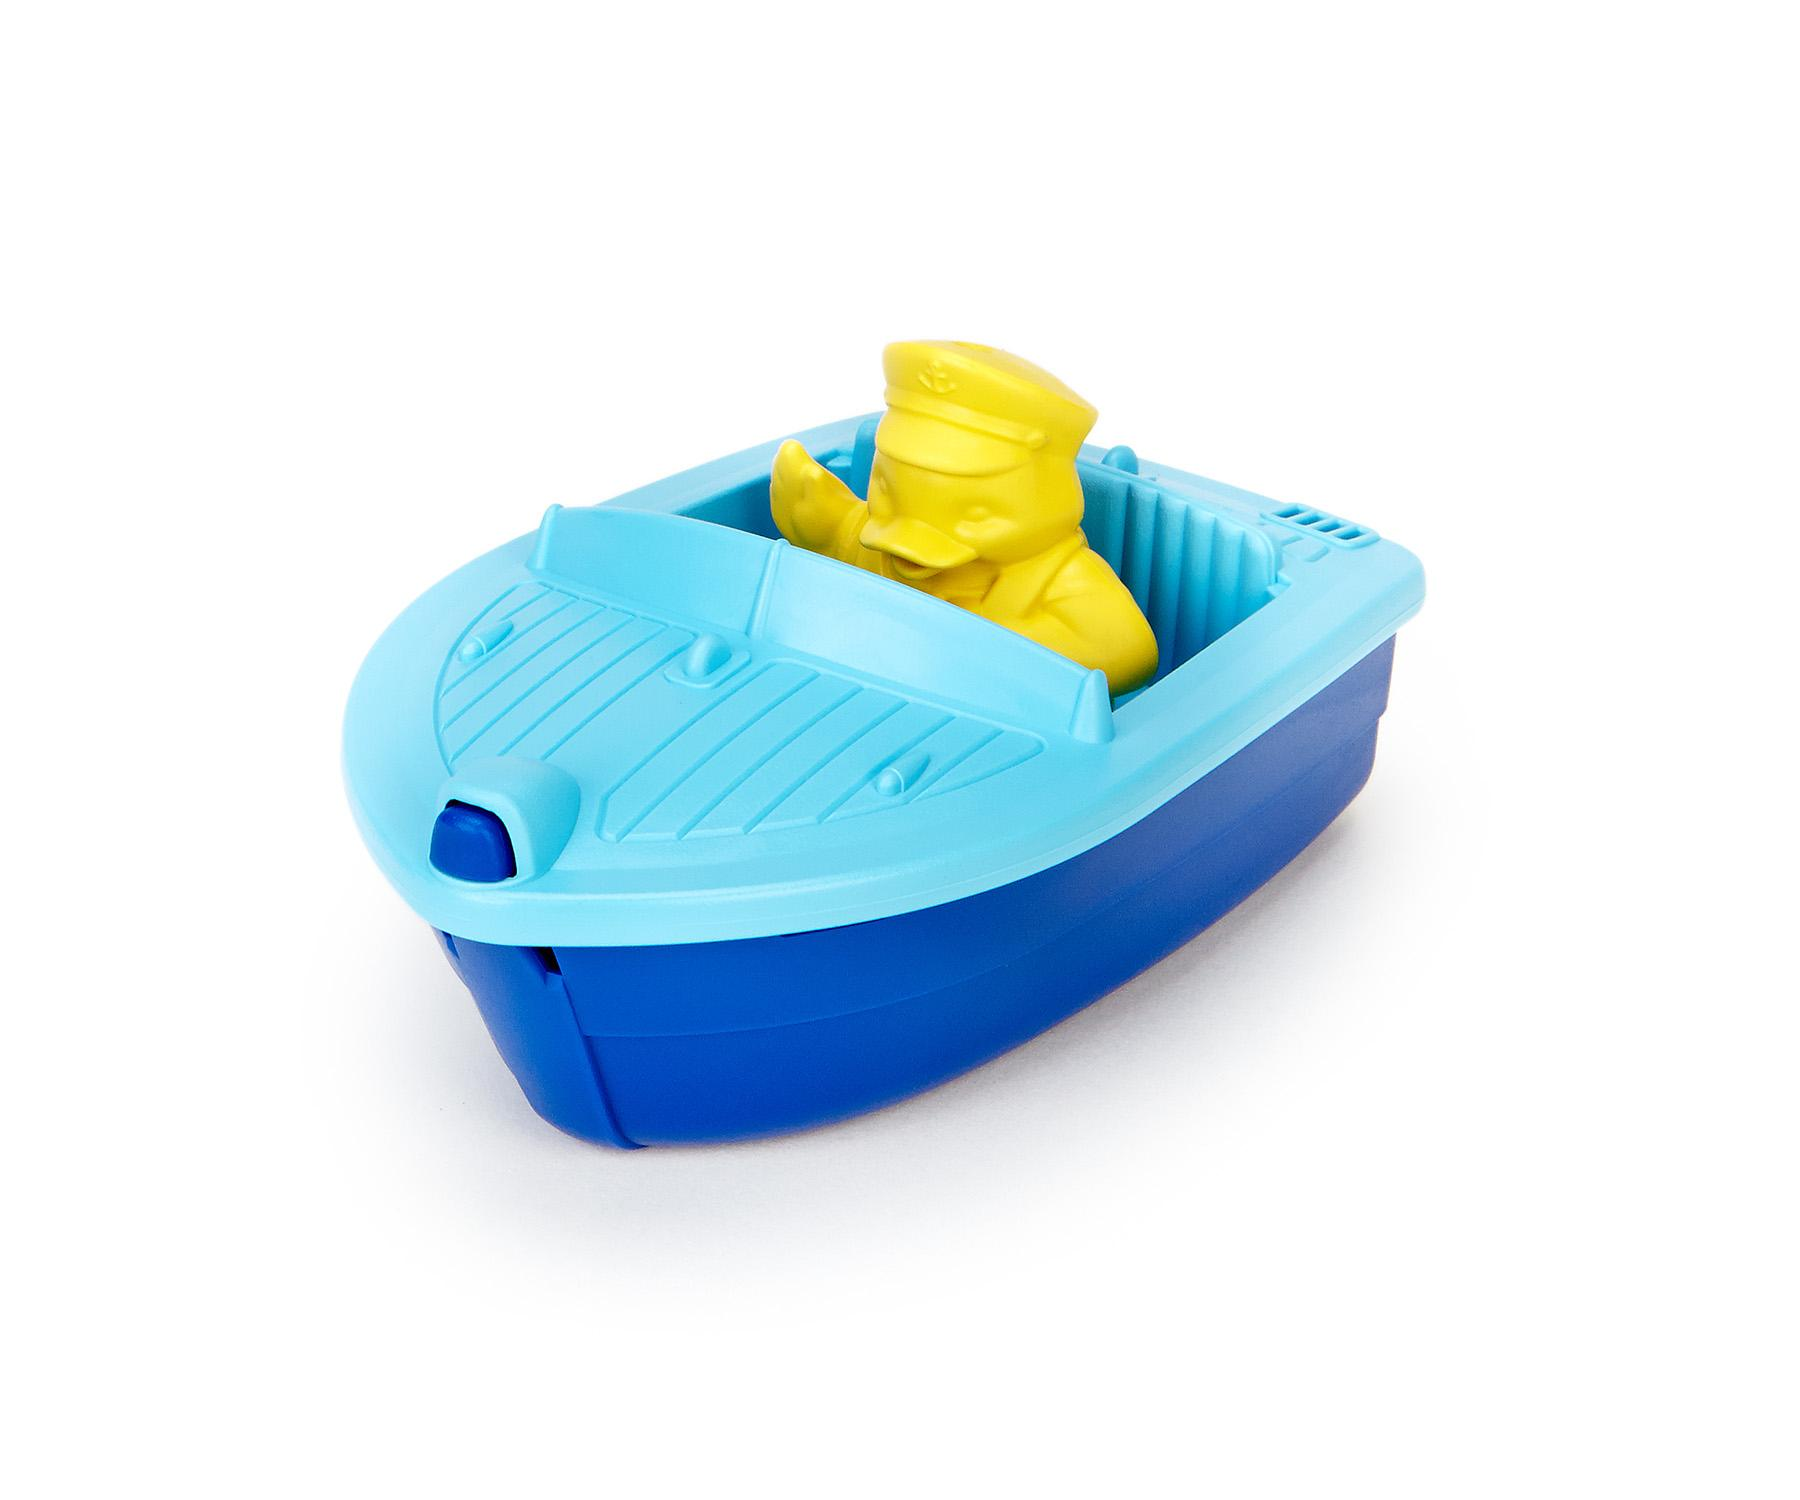 Launch Boat Blue (Other) by Green Toys Inc